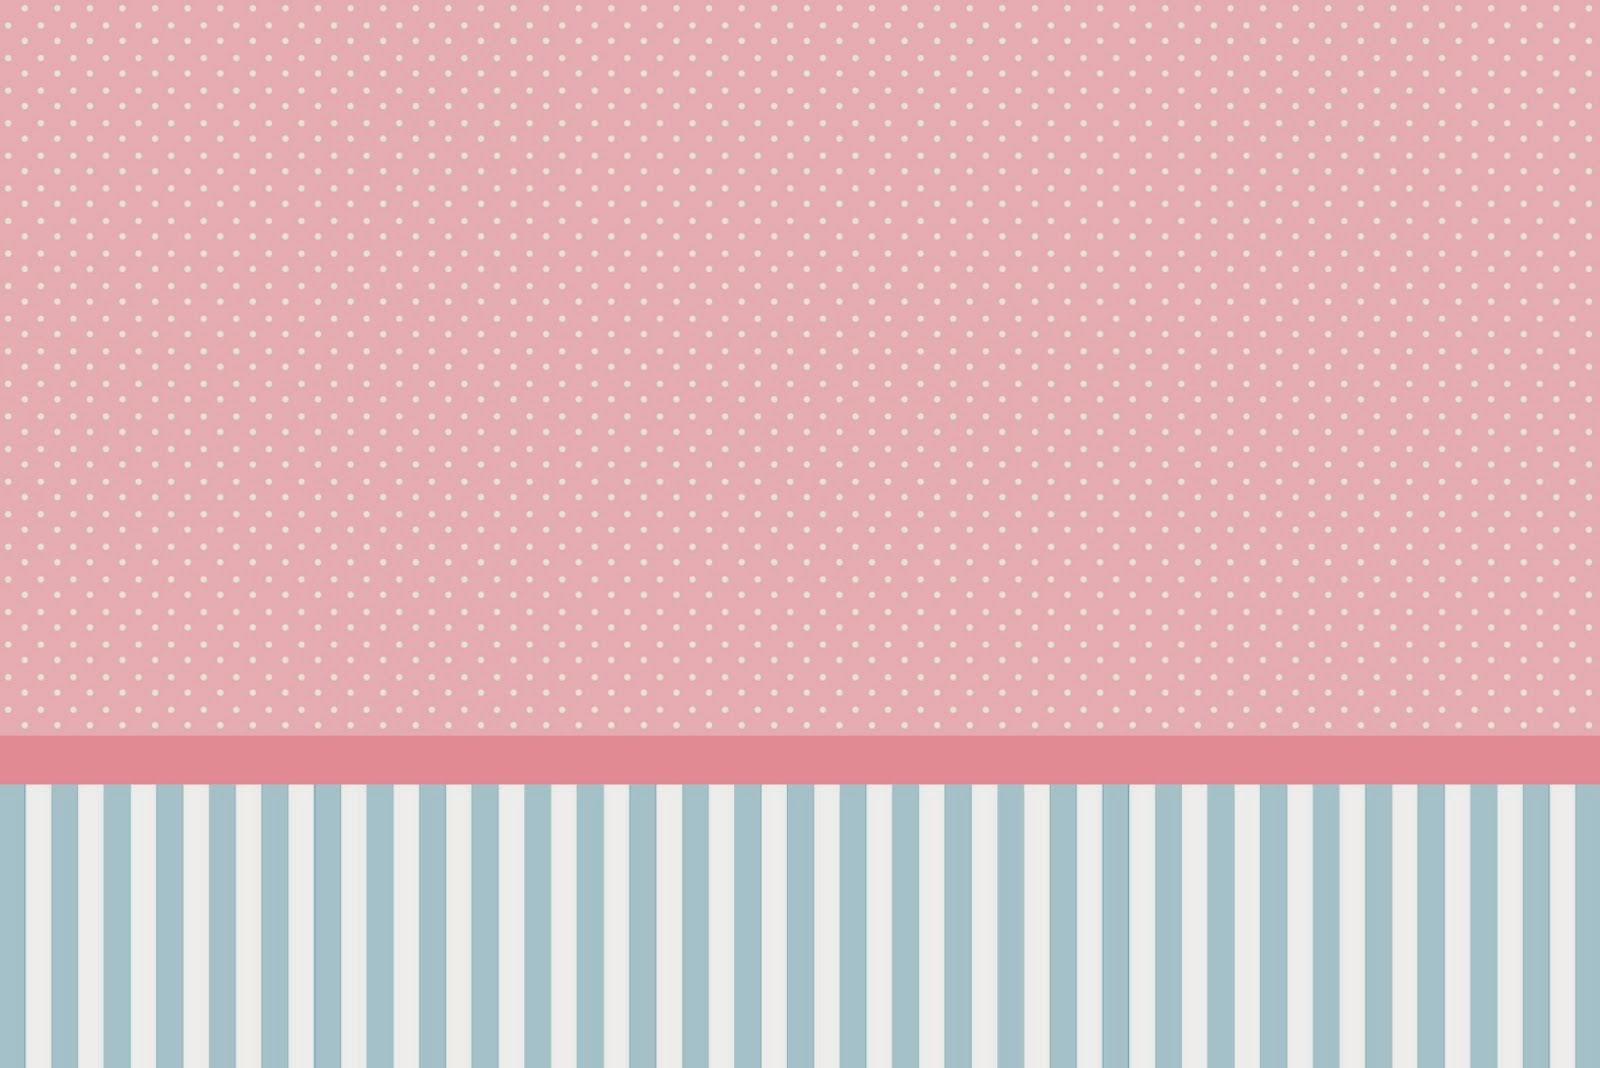 Pink, White and Light Blue Free Printable Invitations, Labels or Cards.